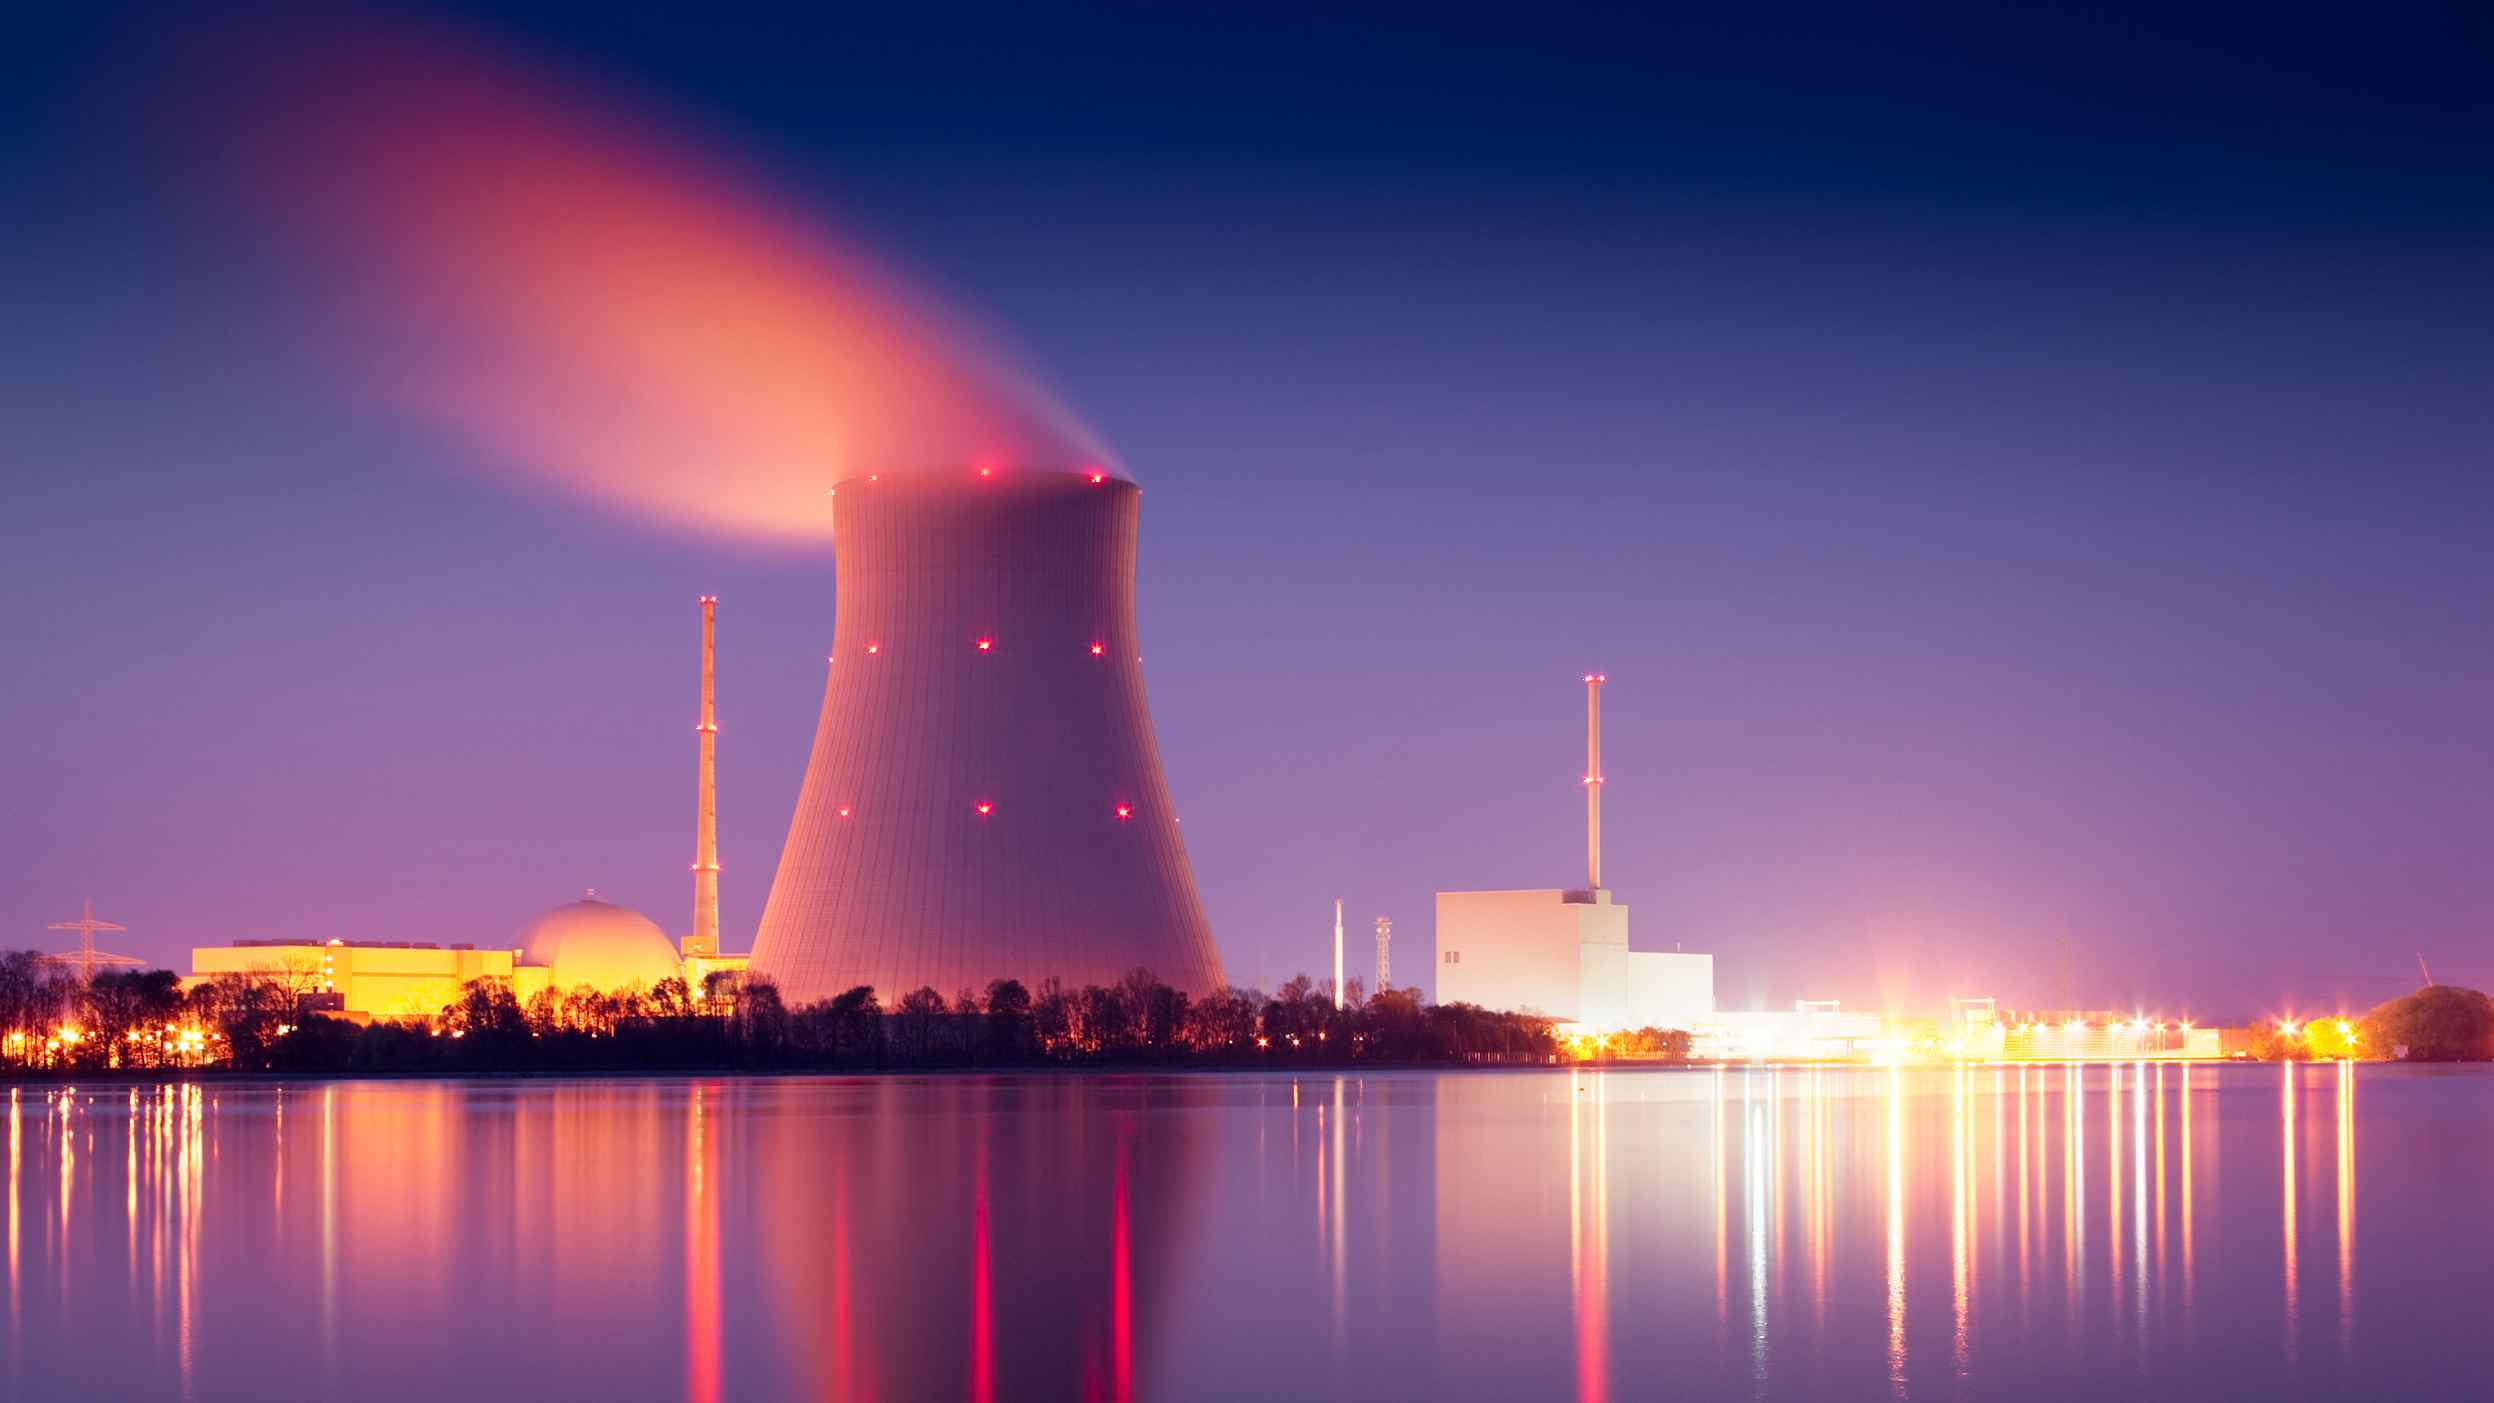 World Nuclear Exhibition postponed to December